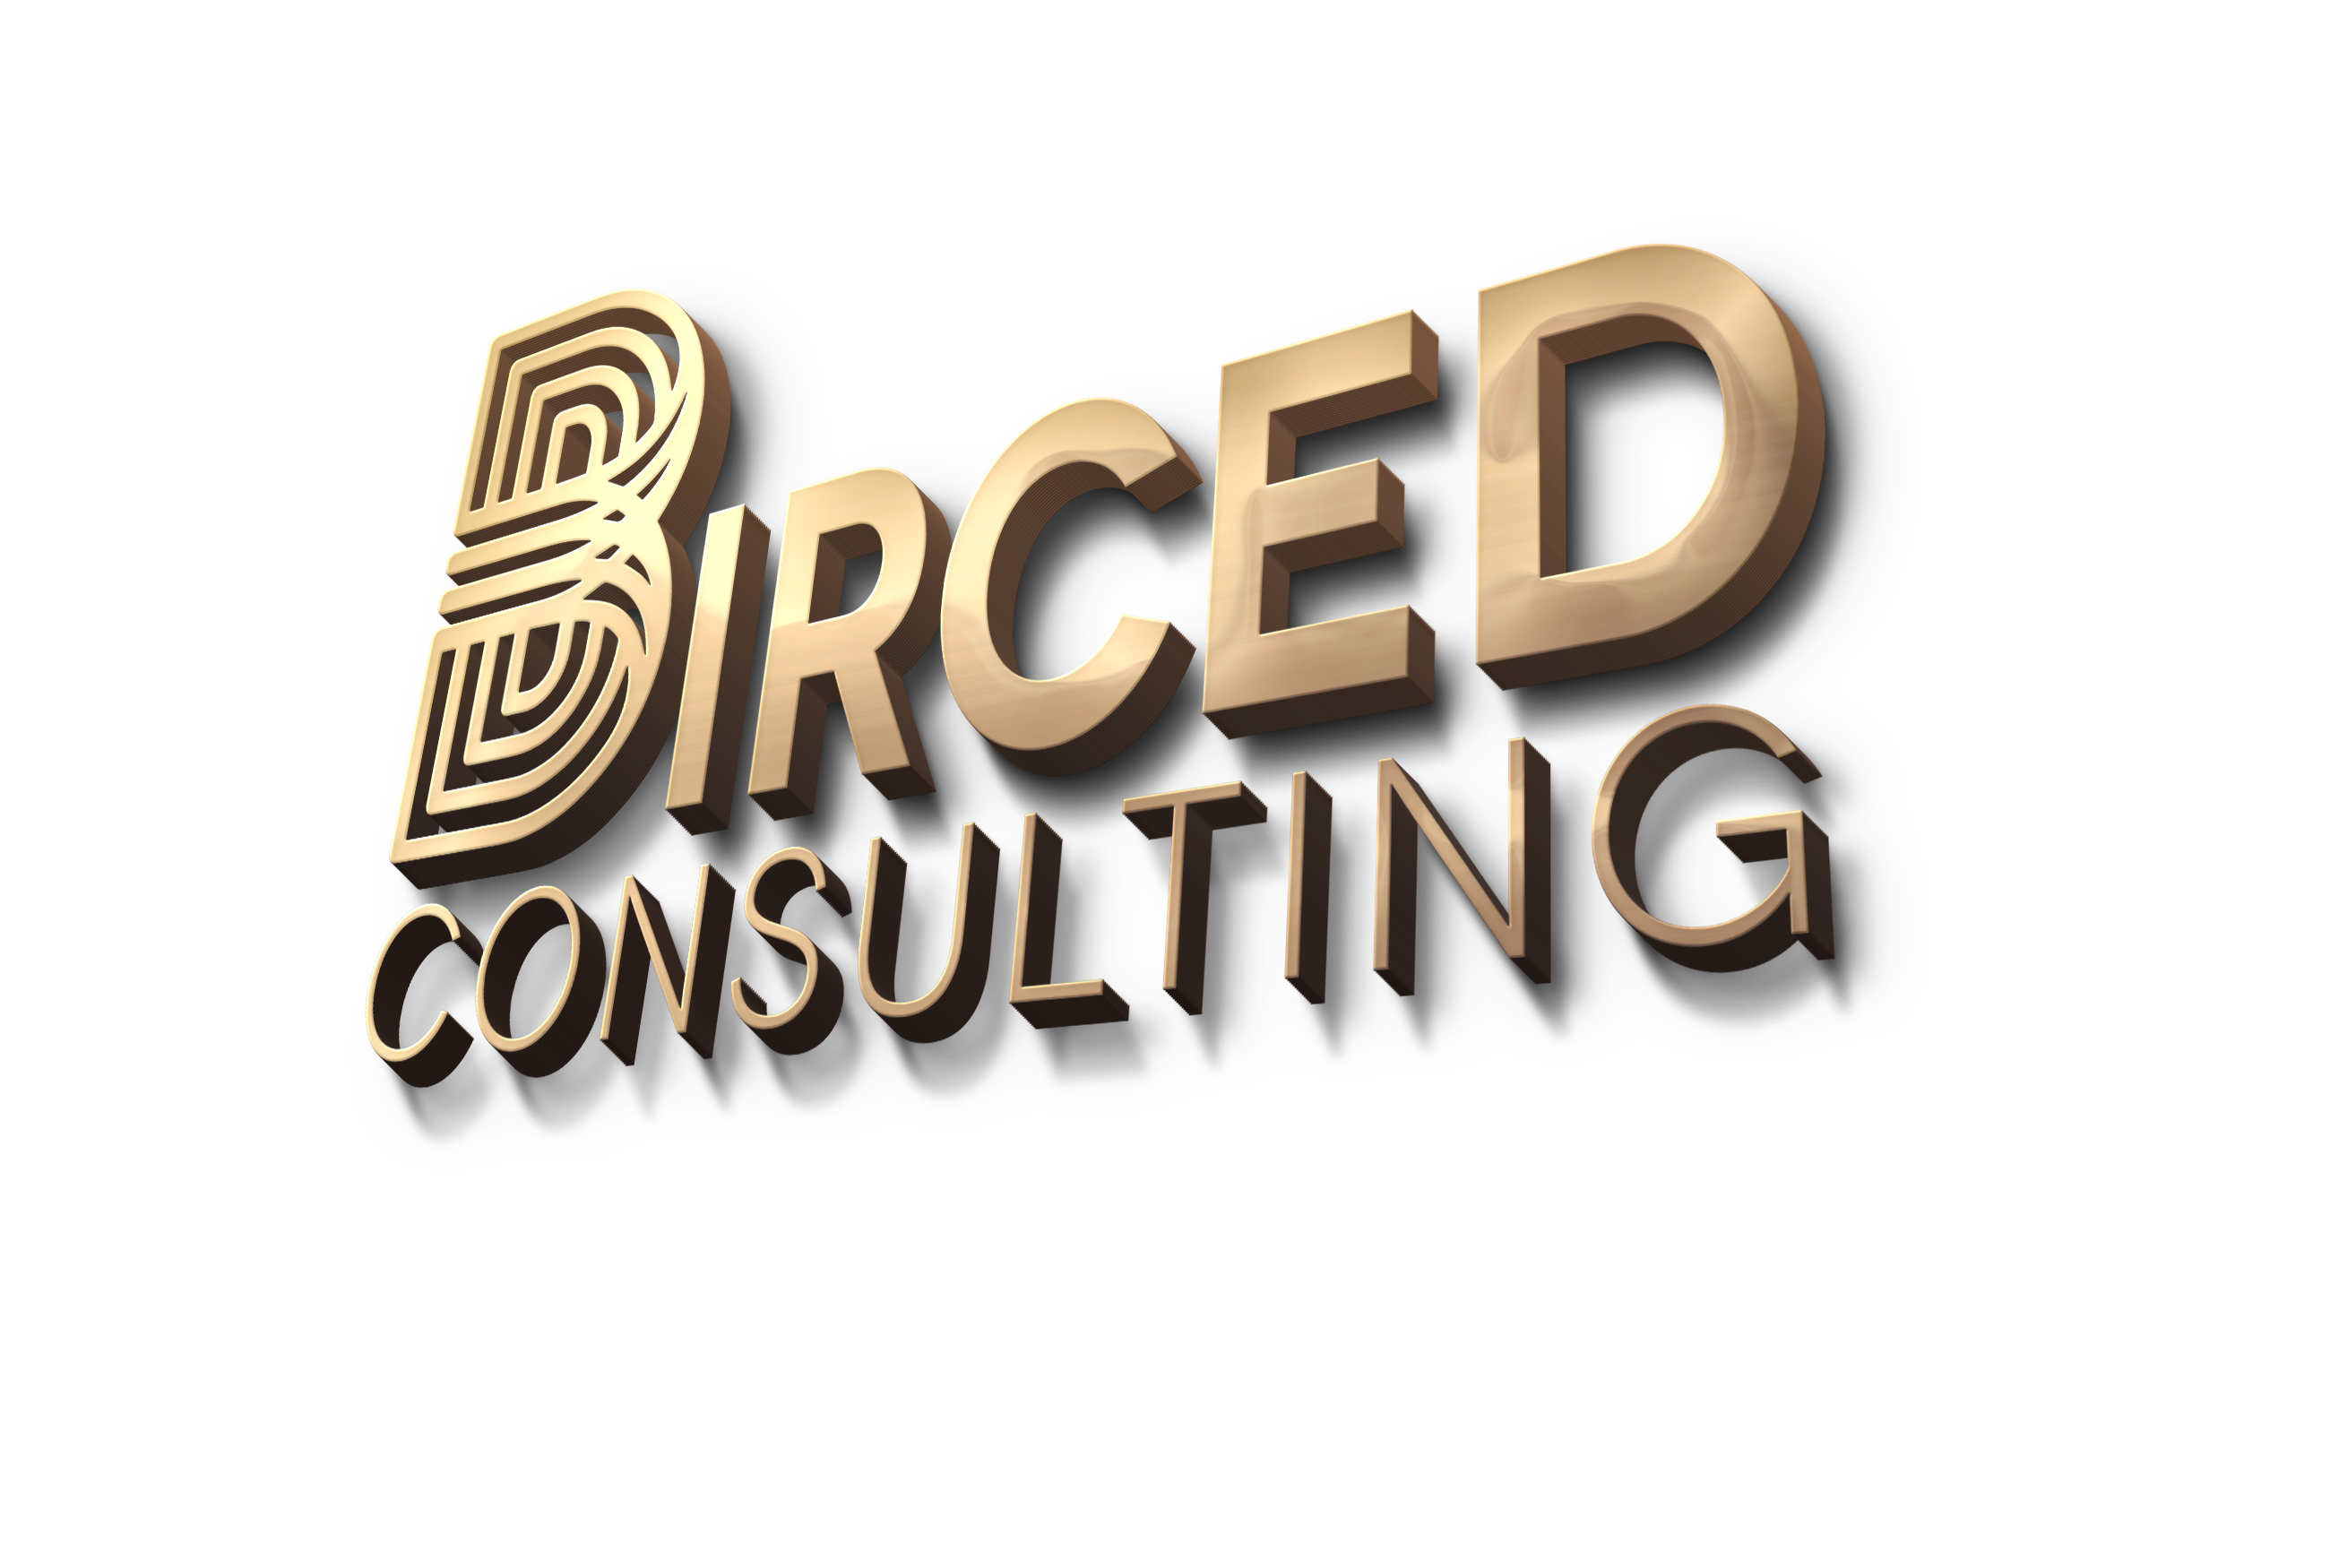 Birced Consulting